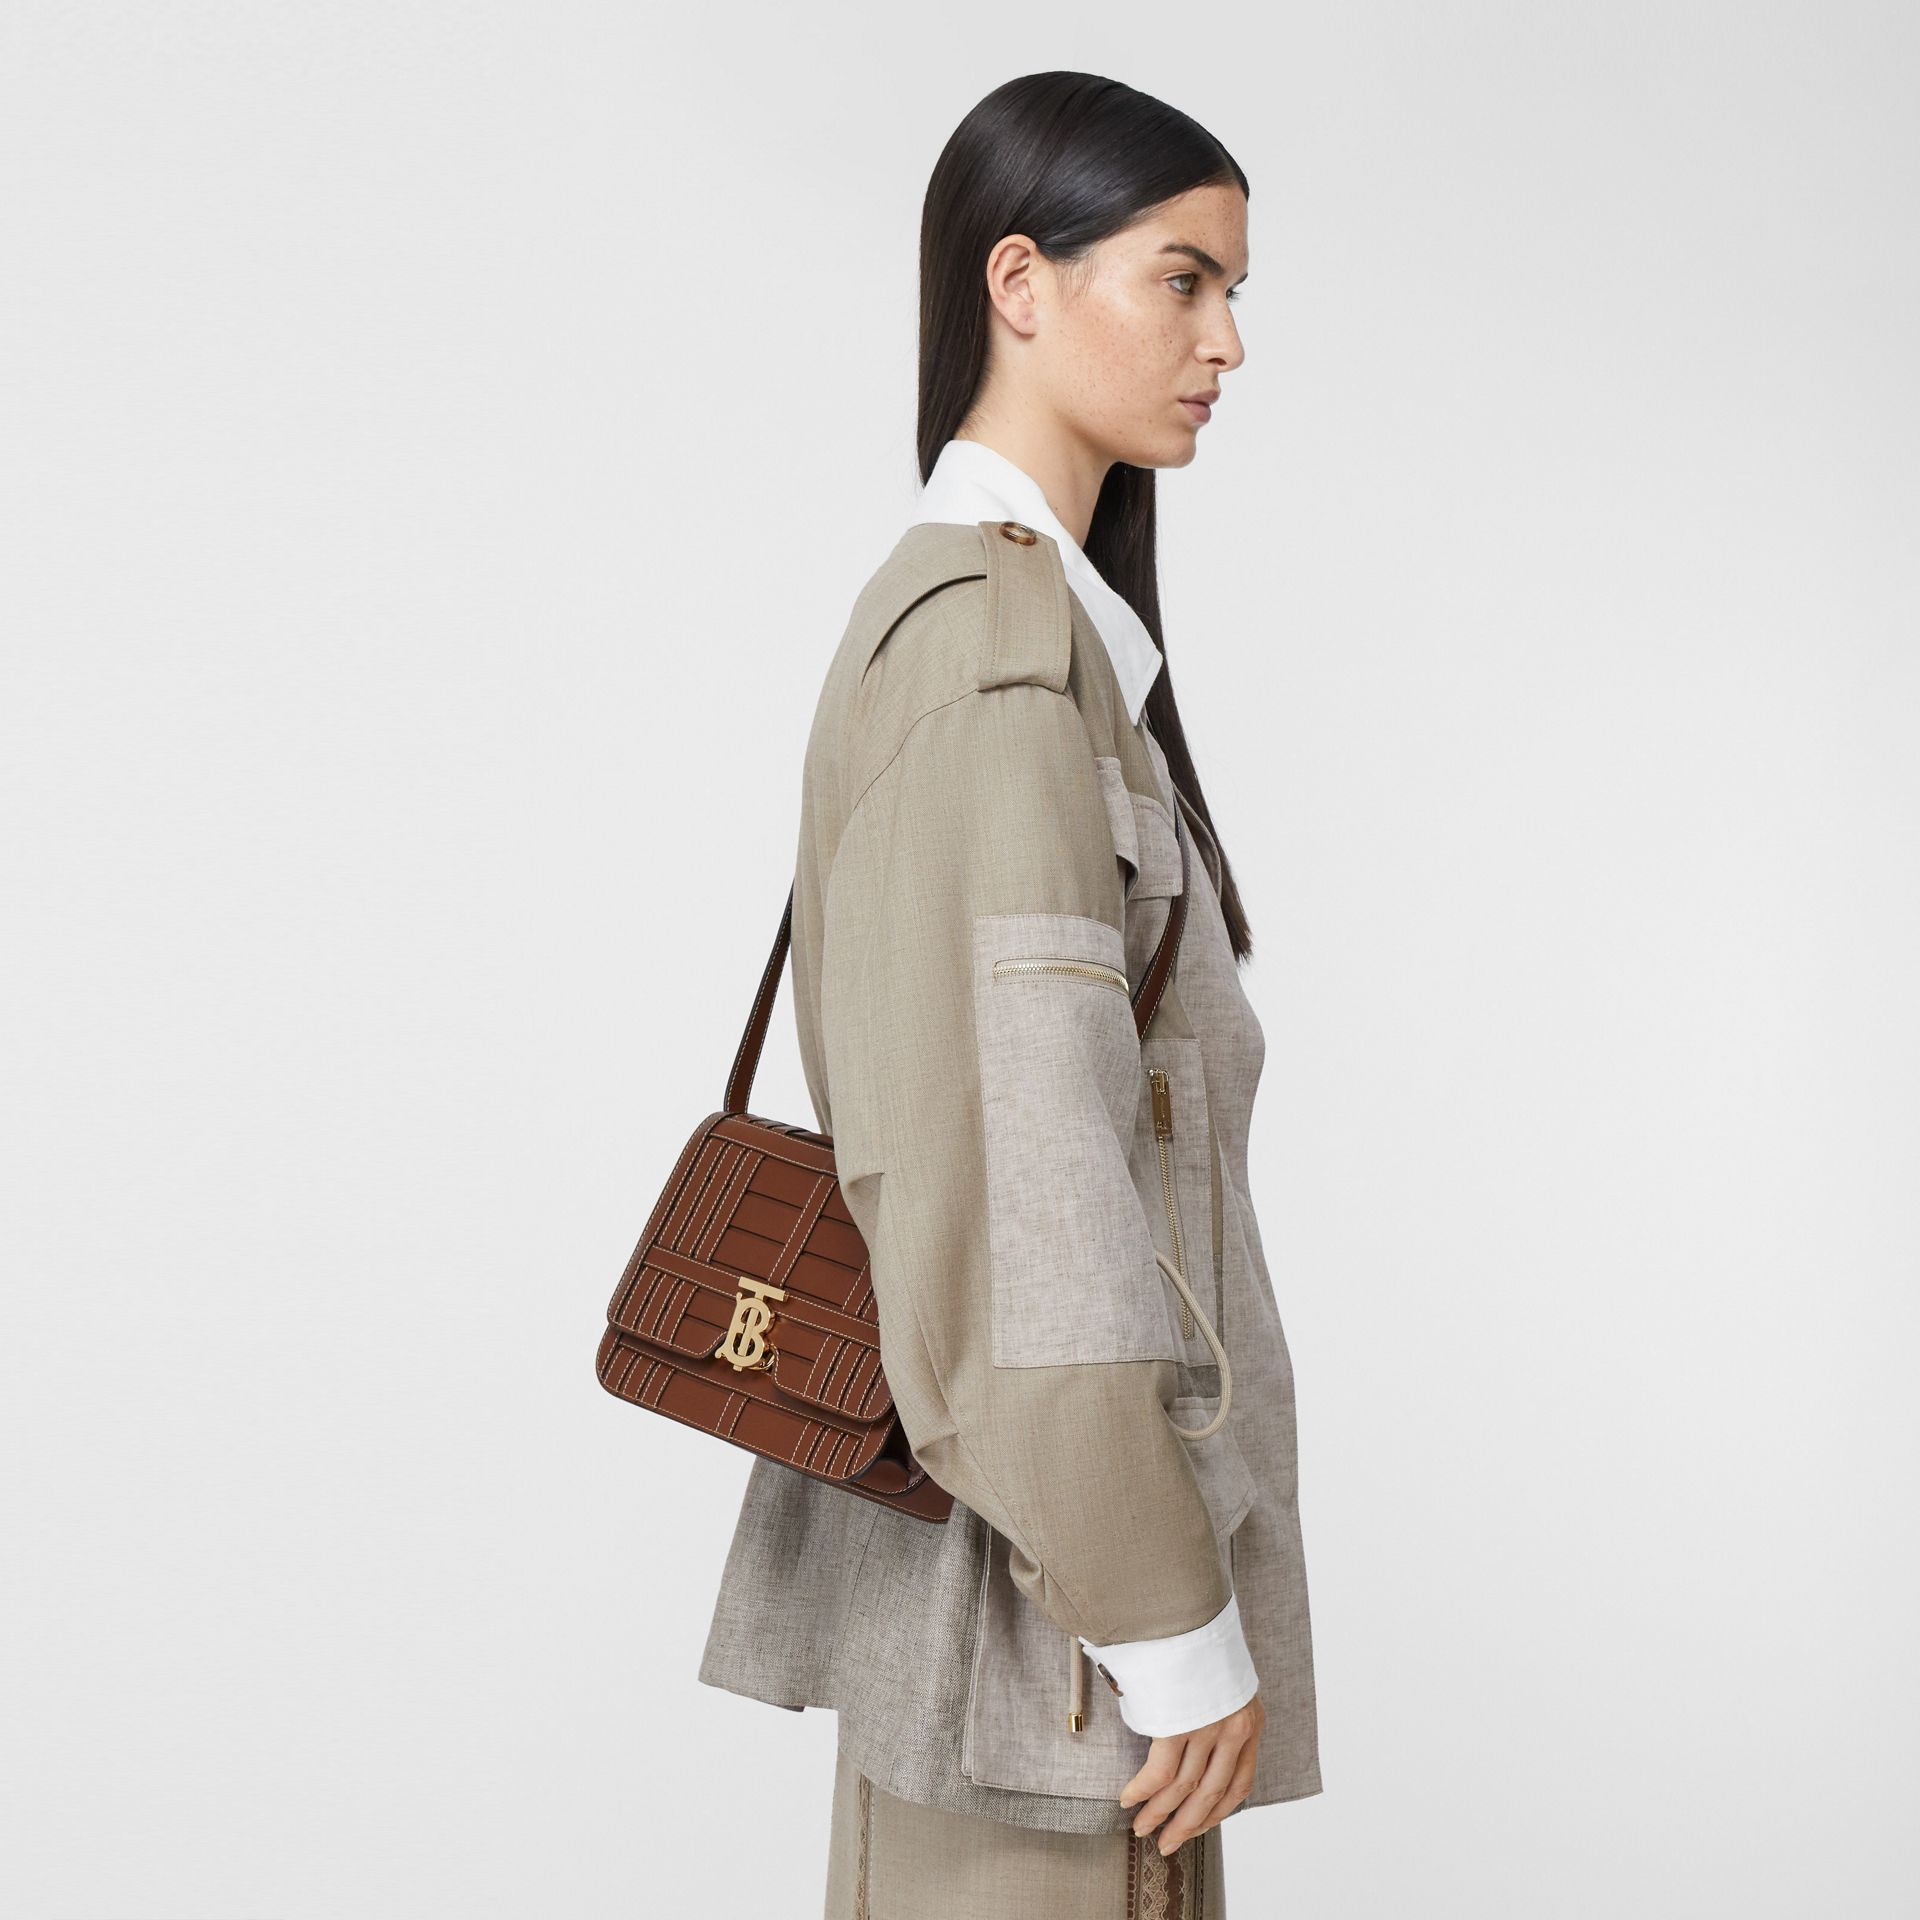 Medium Woven Leather TB Bag in Tan - Women | Burberry - gallery image 2